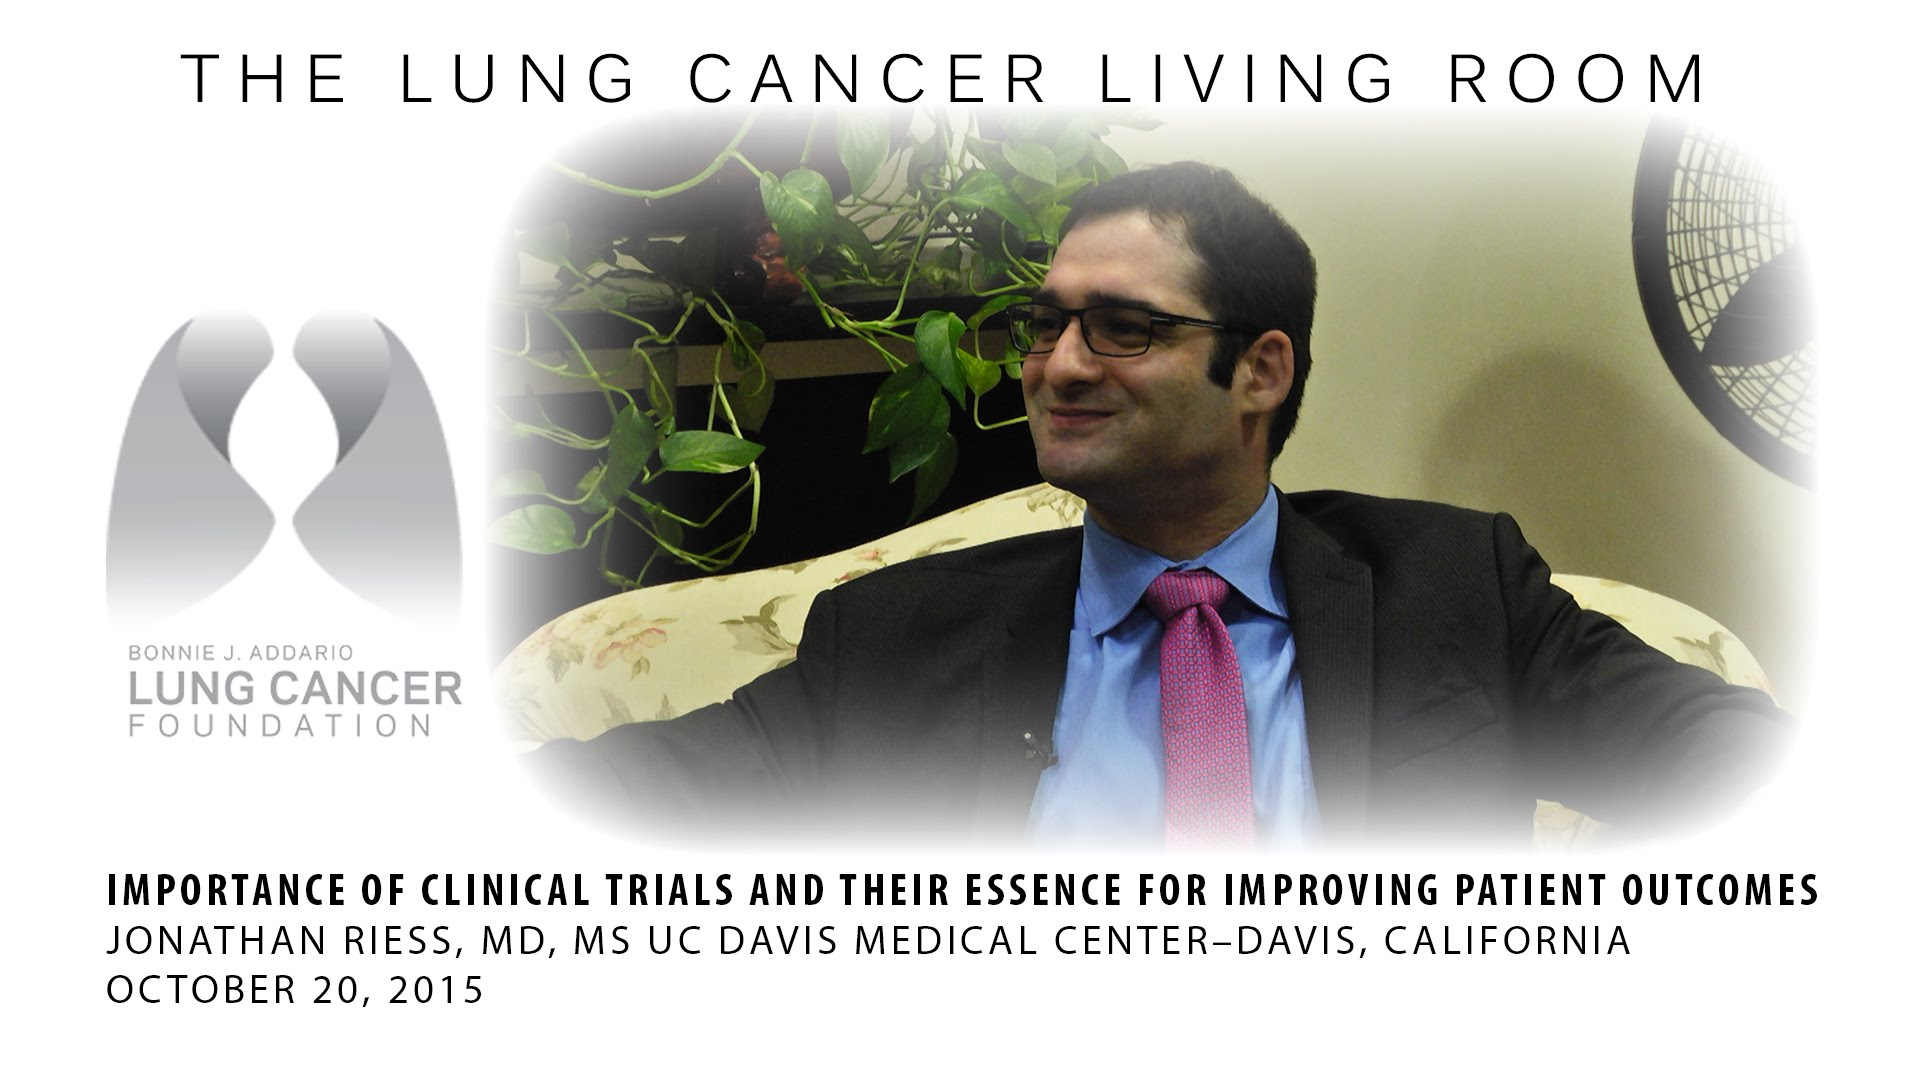 Lung cancer living room 10 20 15 peninsula television inc for The living room 20 10